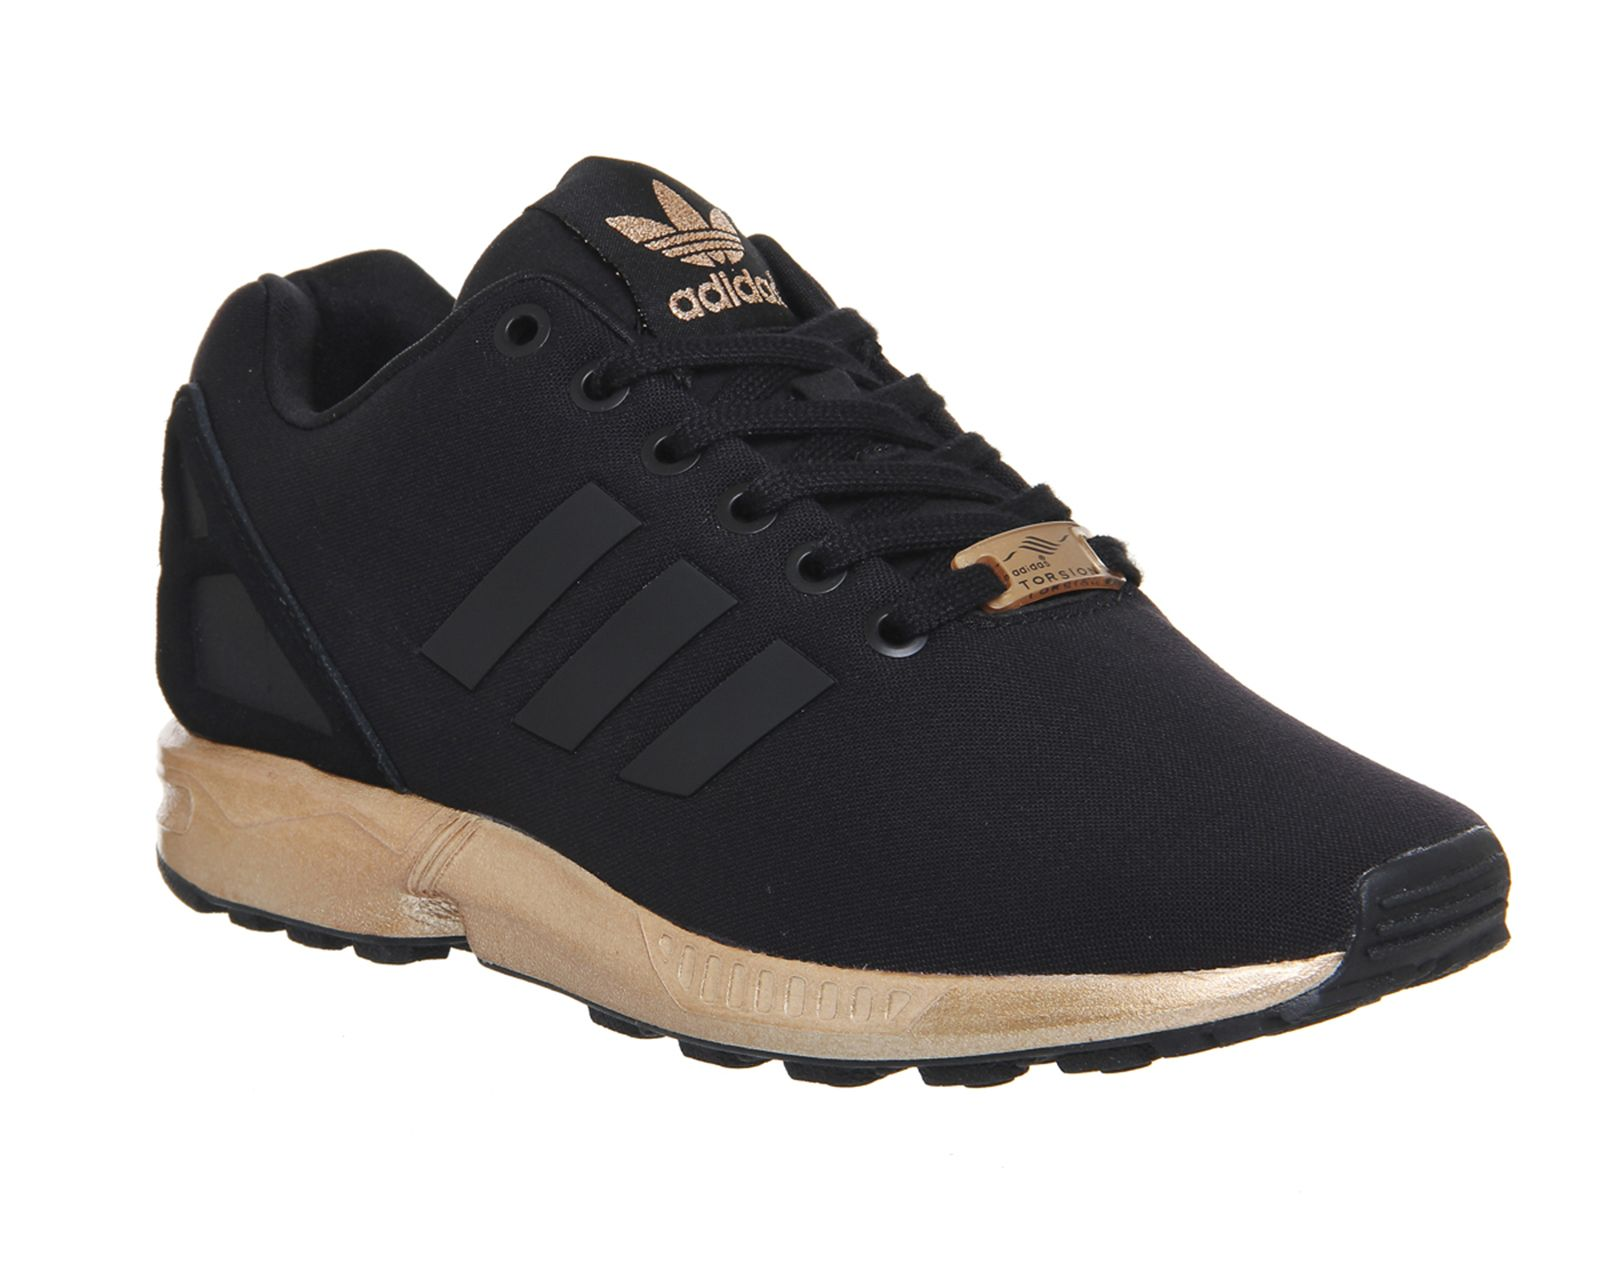 Adidas Zx Flux Black Metallic Copper - Unisex Sports